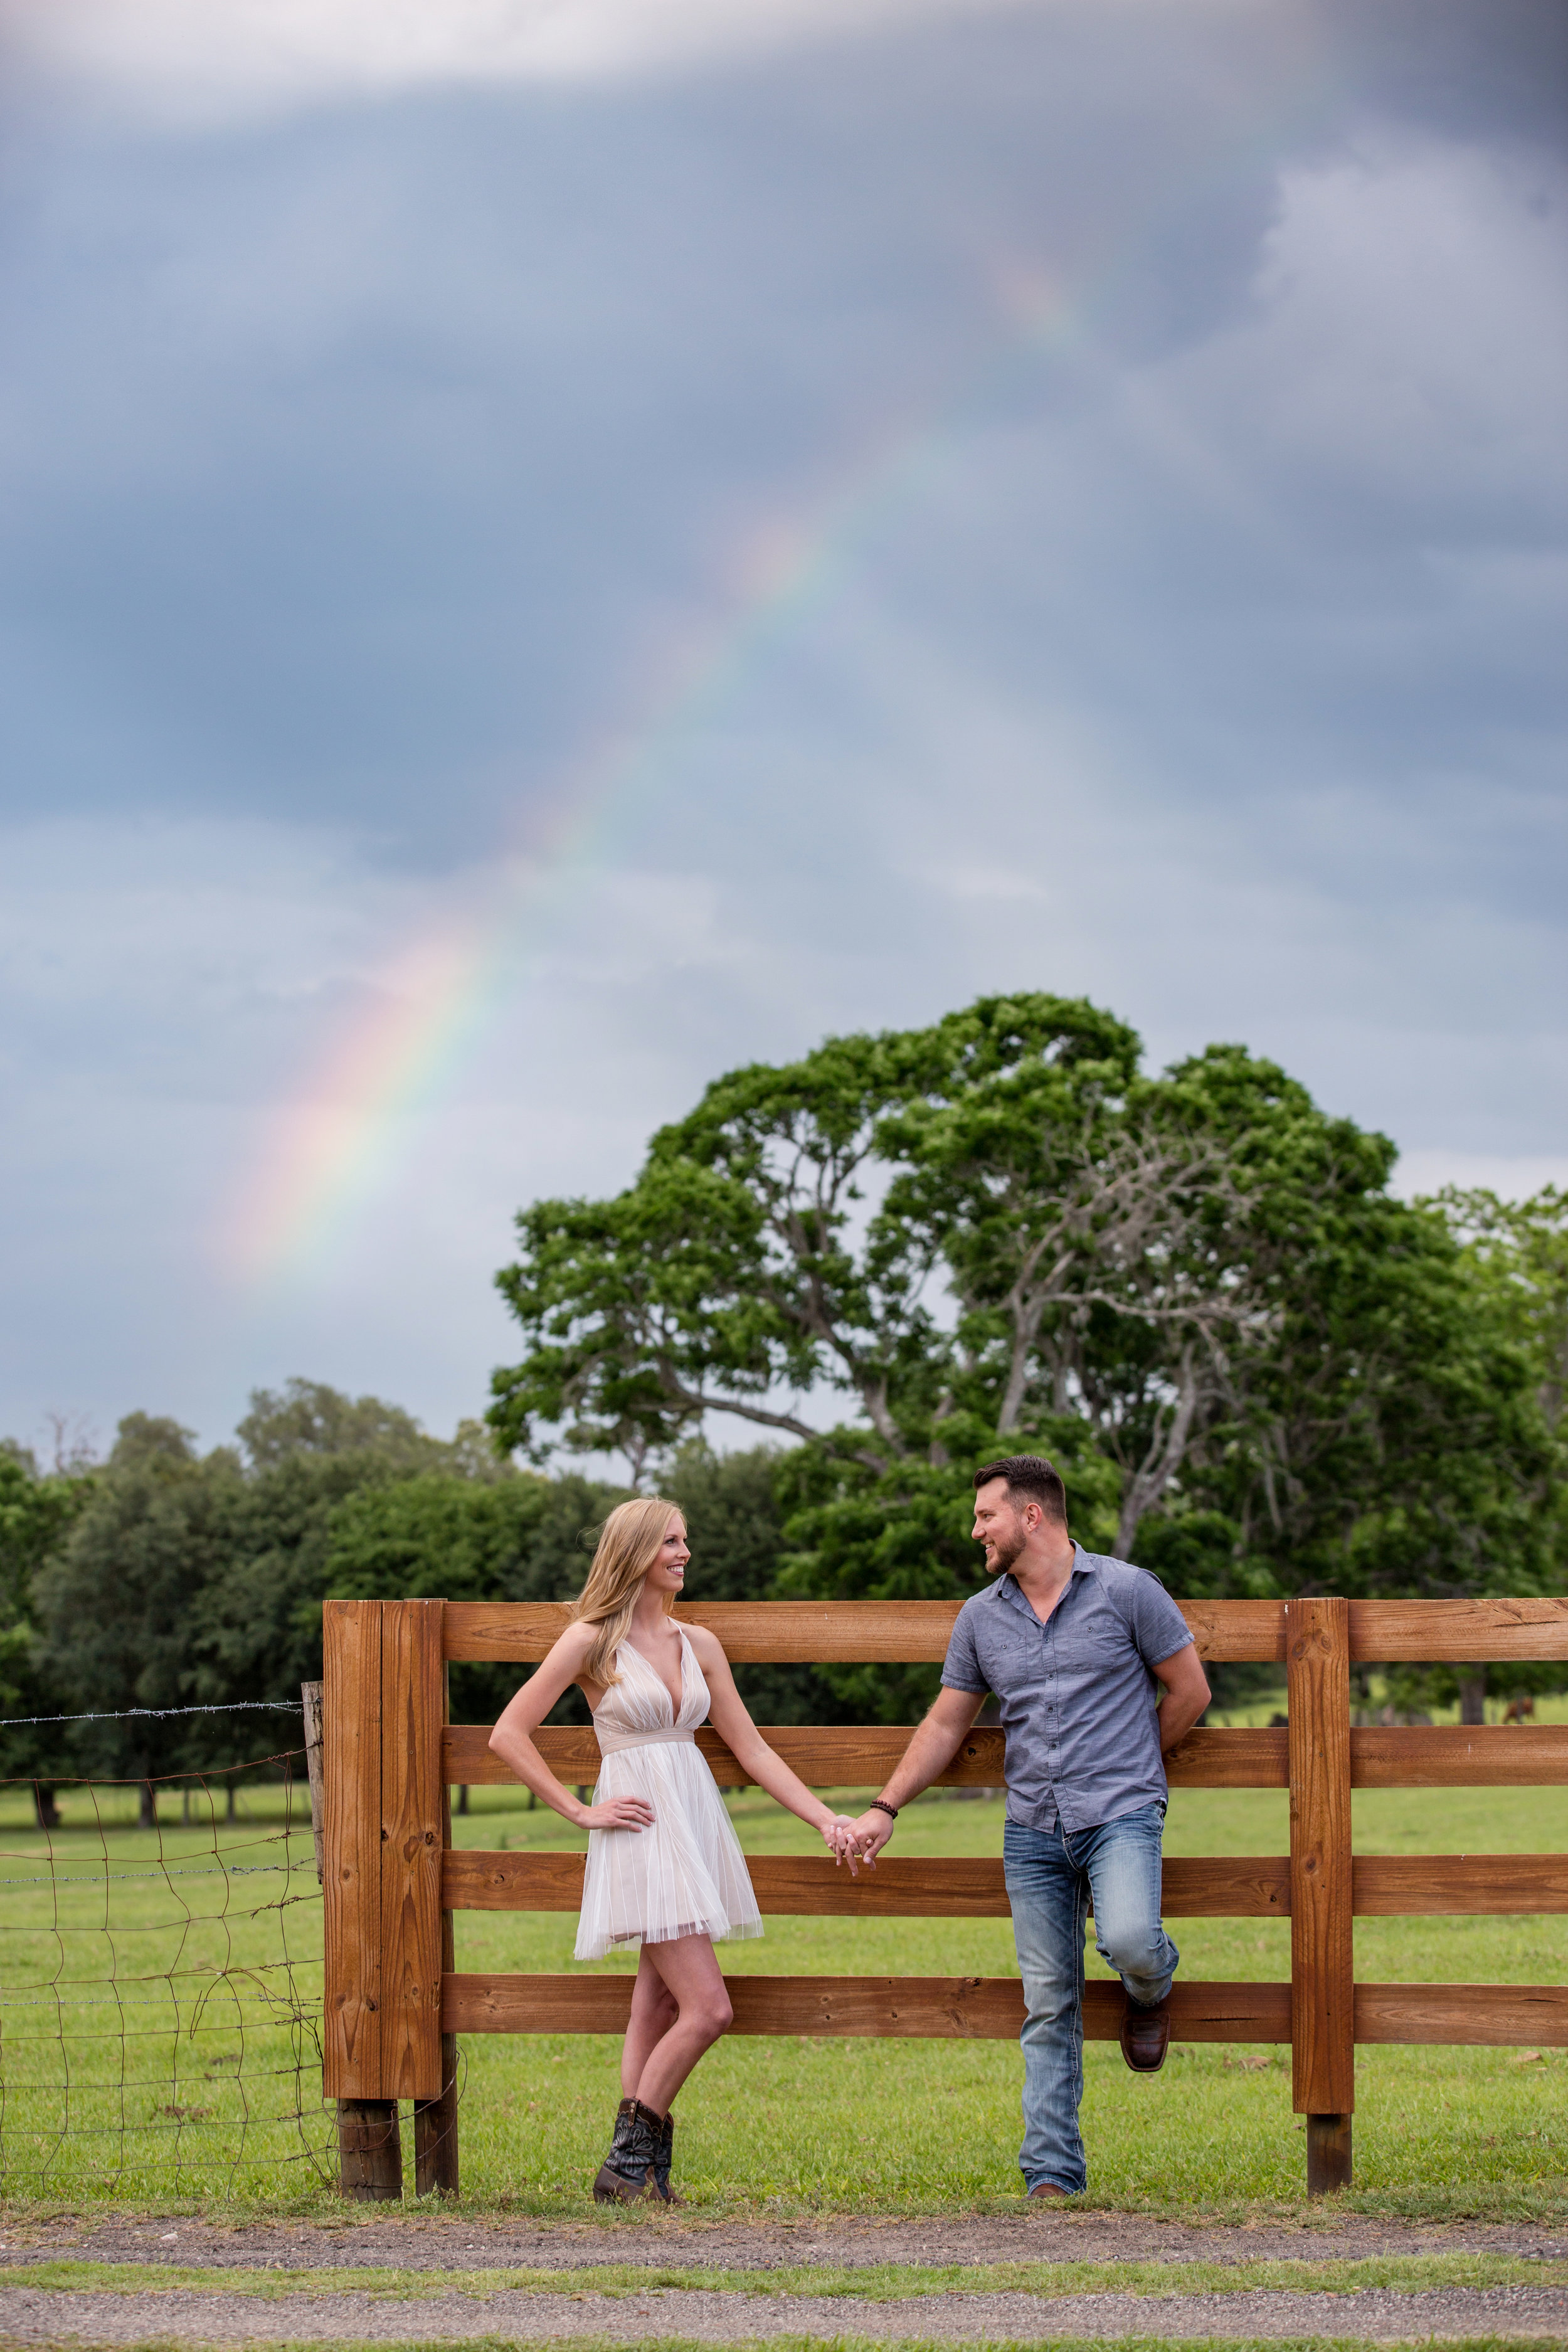 Gainesville Outdoor Engagement Photography Field Farm Photographer